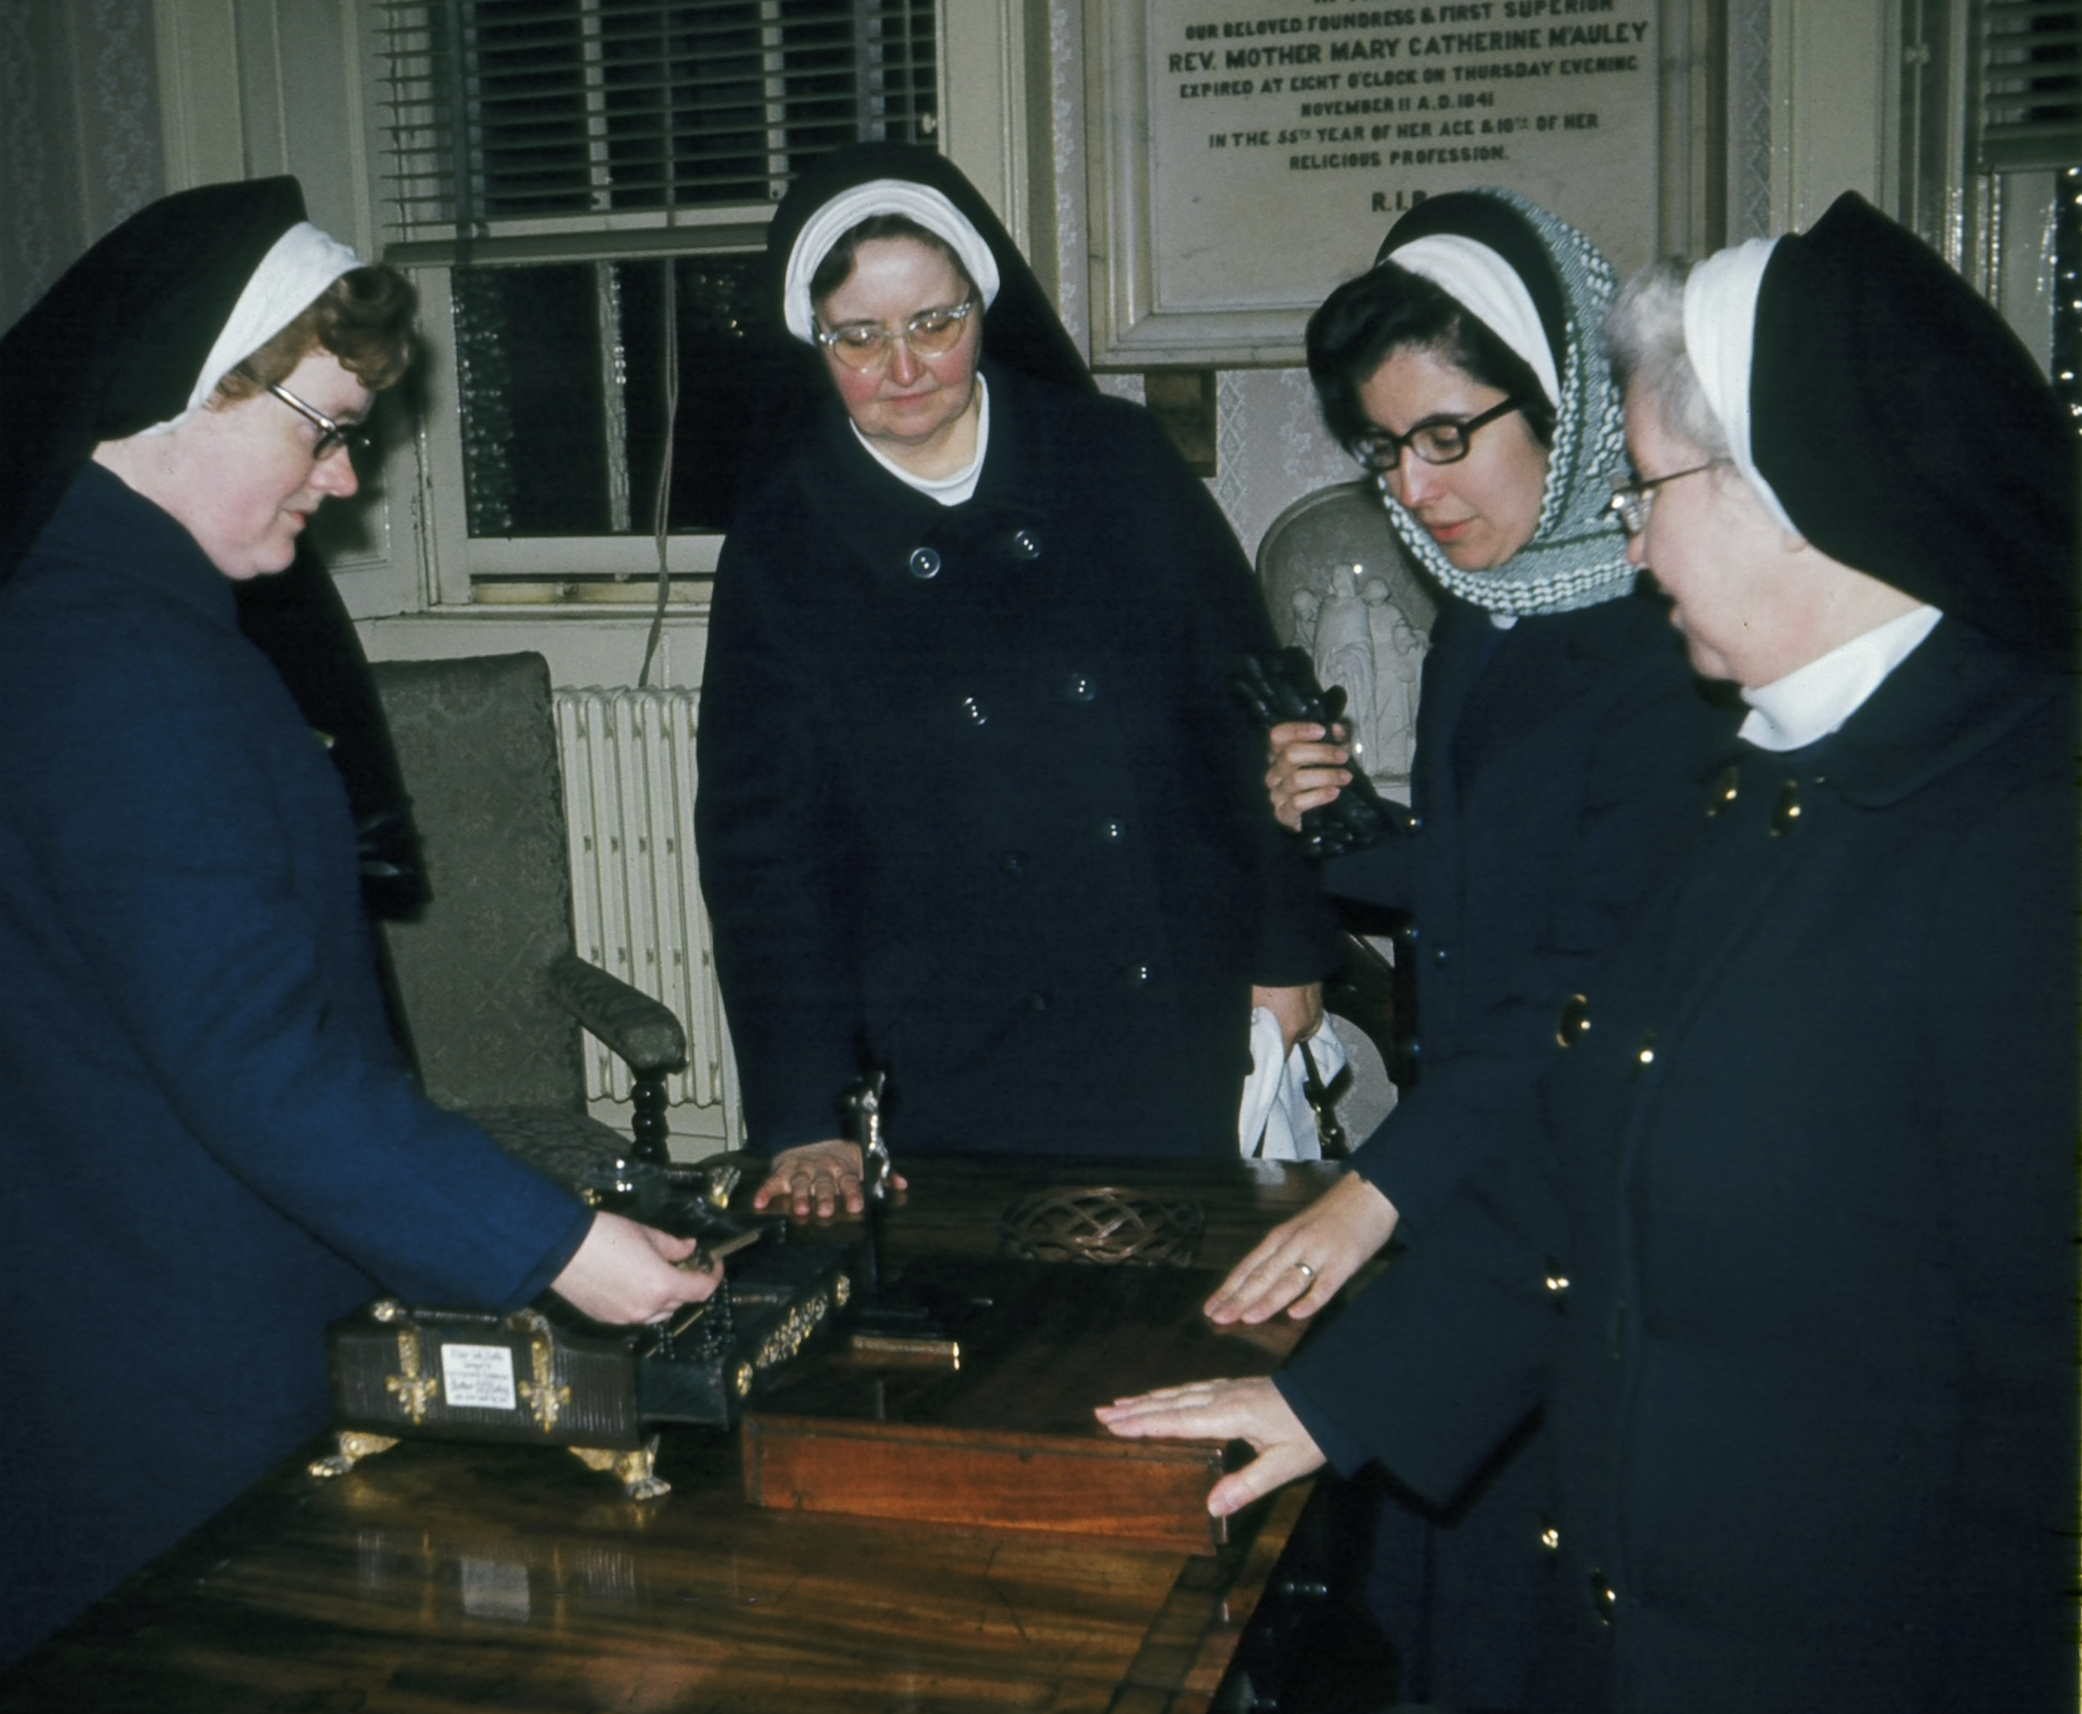 In the midst of the refoundation, the Founding Mothers of the Religious Sisters of Mercy of Alma, Michigan visited Baggot Street in Dublin, Ireland (Mother Catherine's first foundation for the Sisters of Mercy). Here, four of them are at Mother Catherine McAuley's writing desk, as she left it, in her room (the writing desk is also pictured above in the large image).